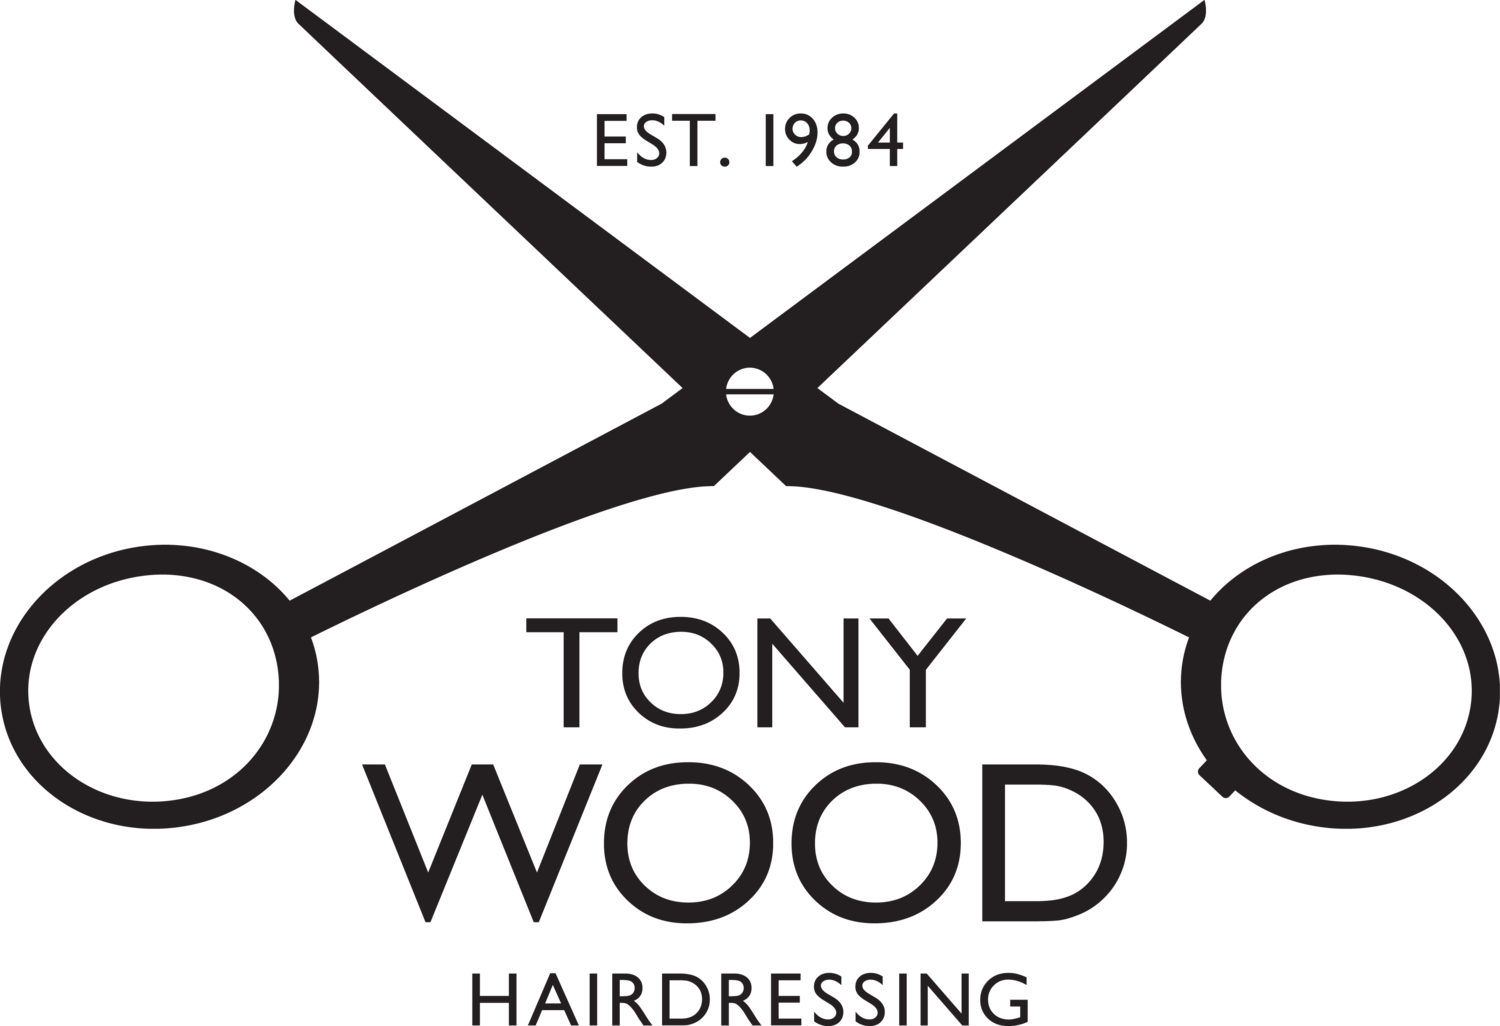 Tony Wood Hair